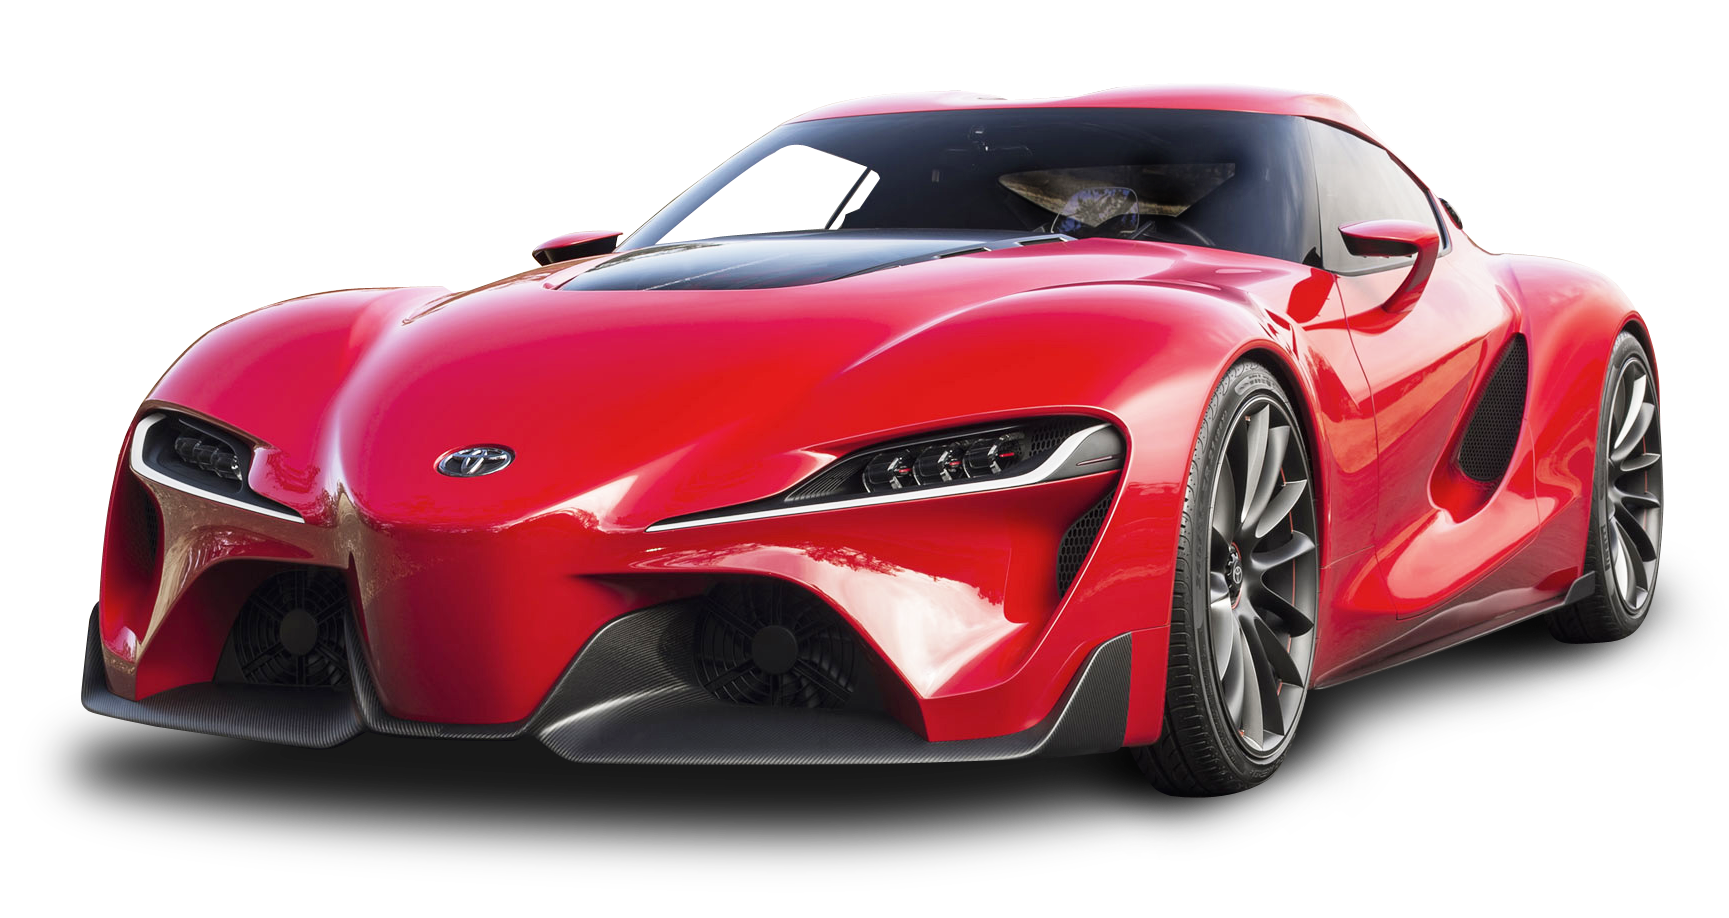 Red Toyota FT 1 Car PNG Image - PngPix